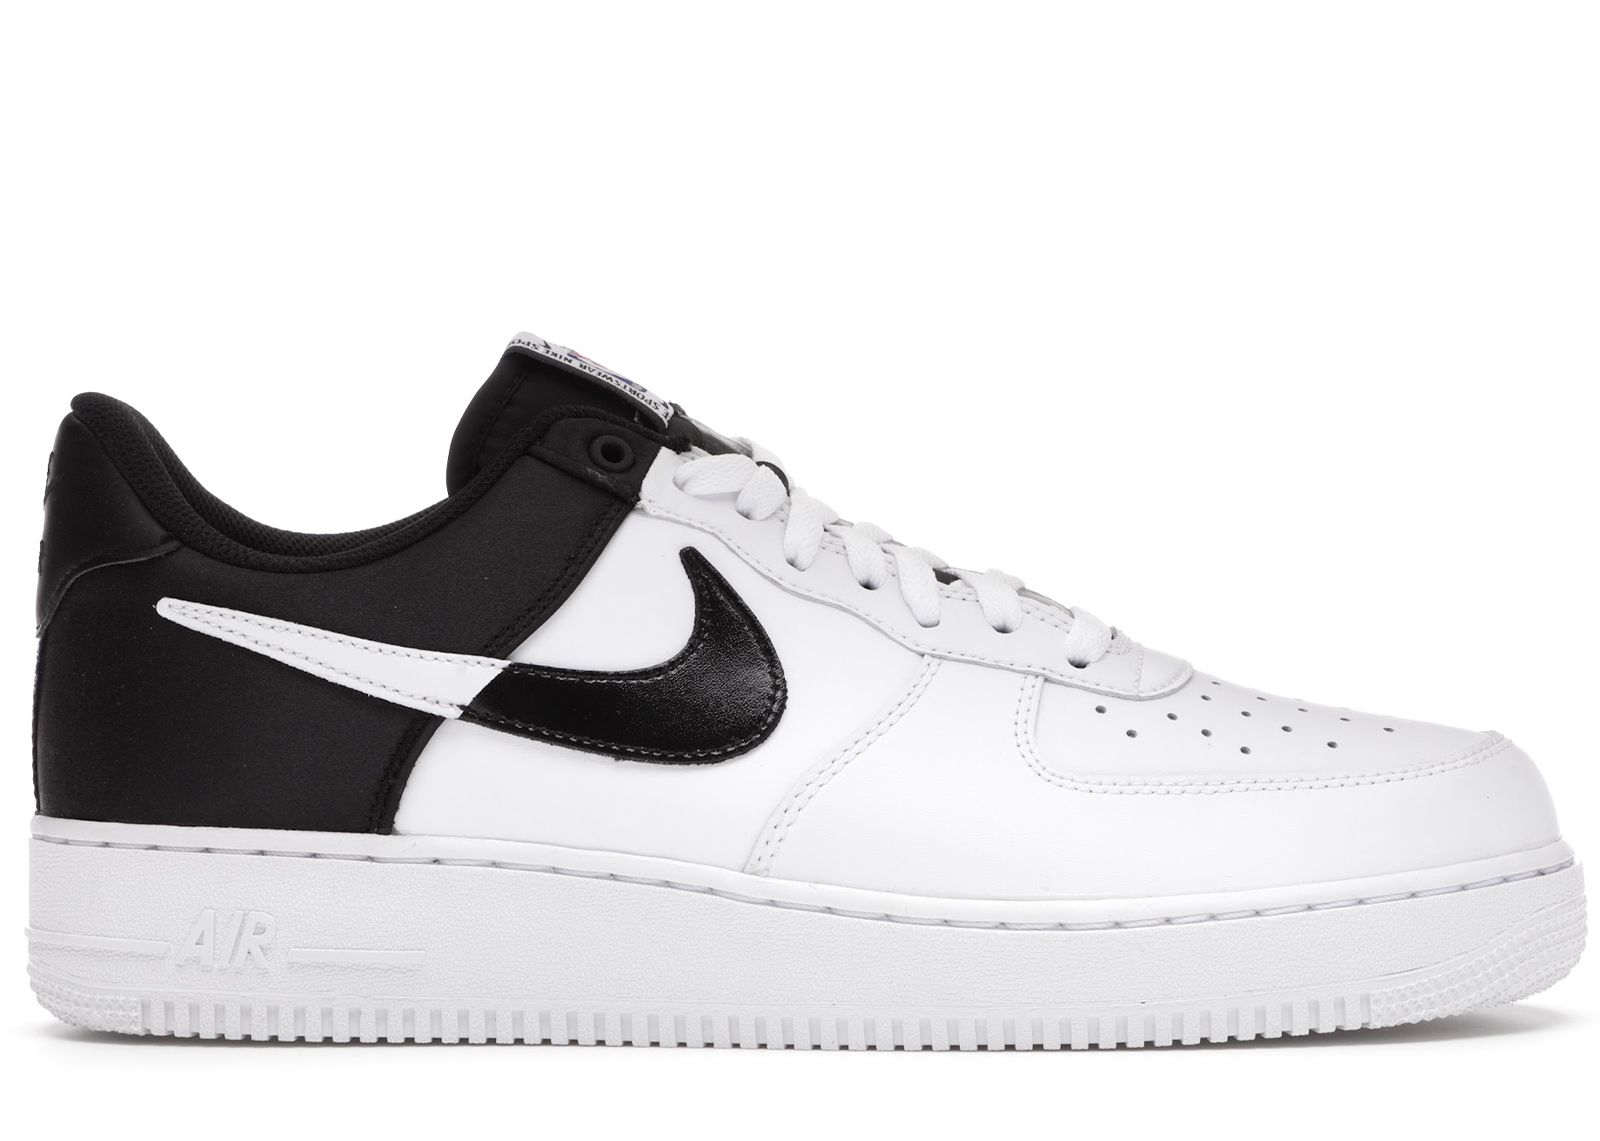 Nike Air Force 1 Low Spurs